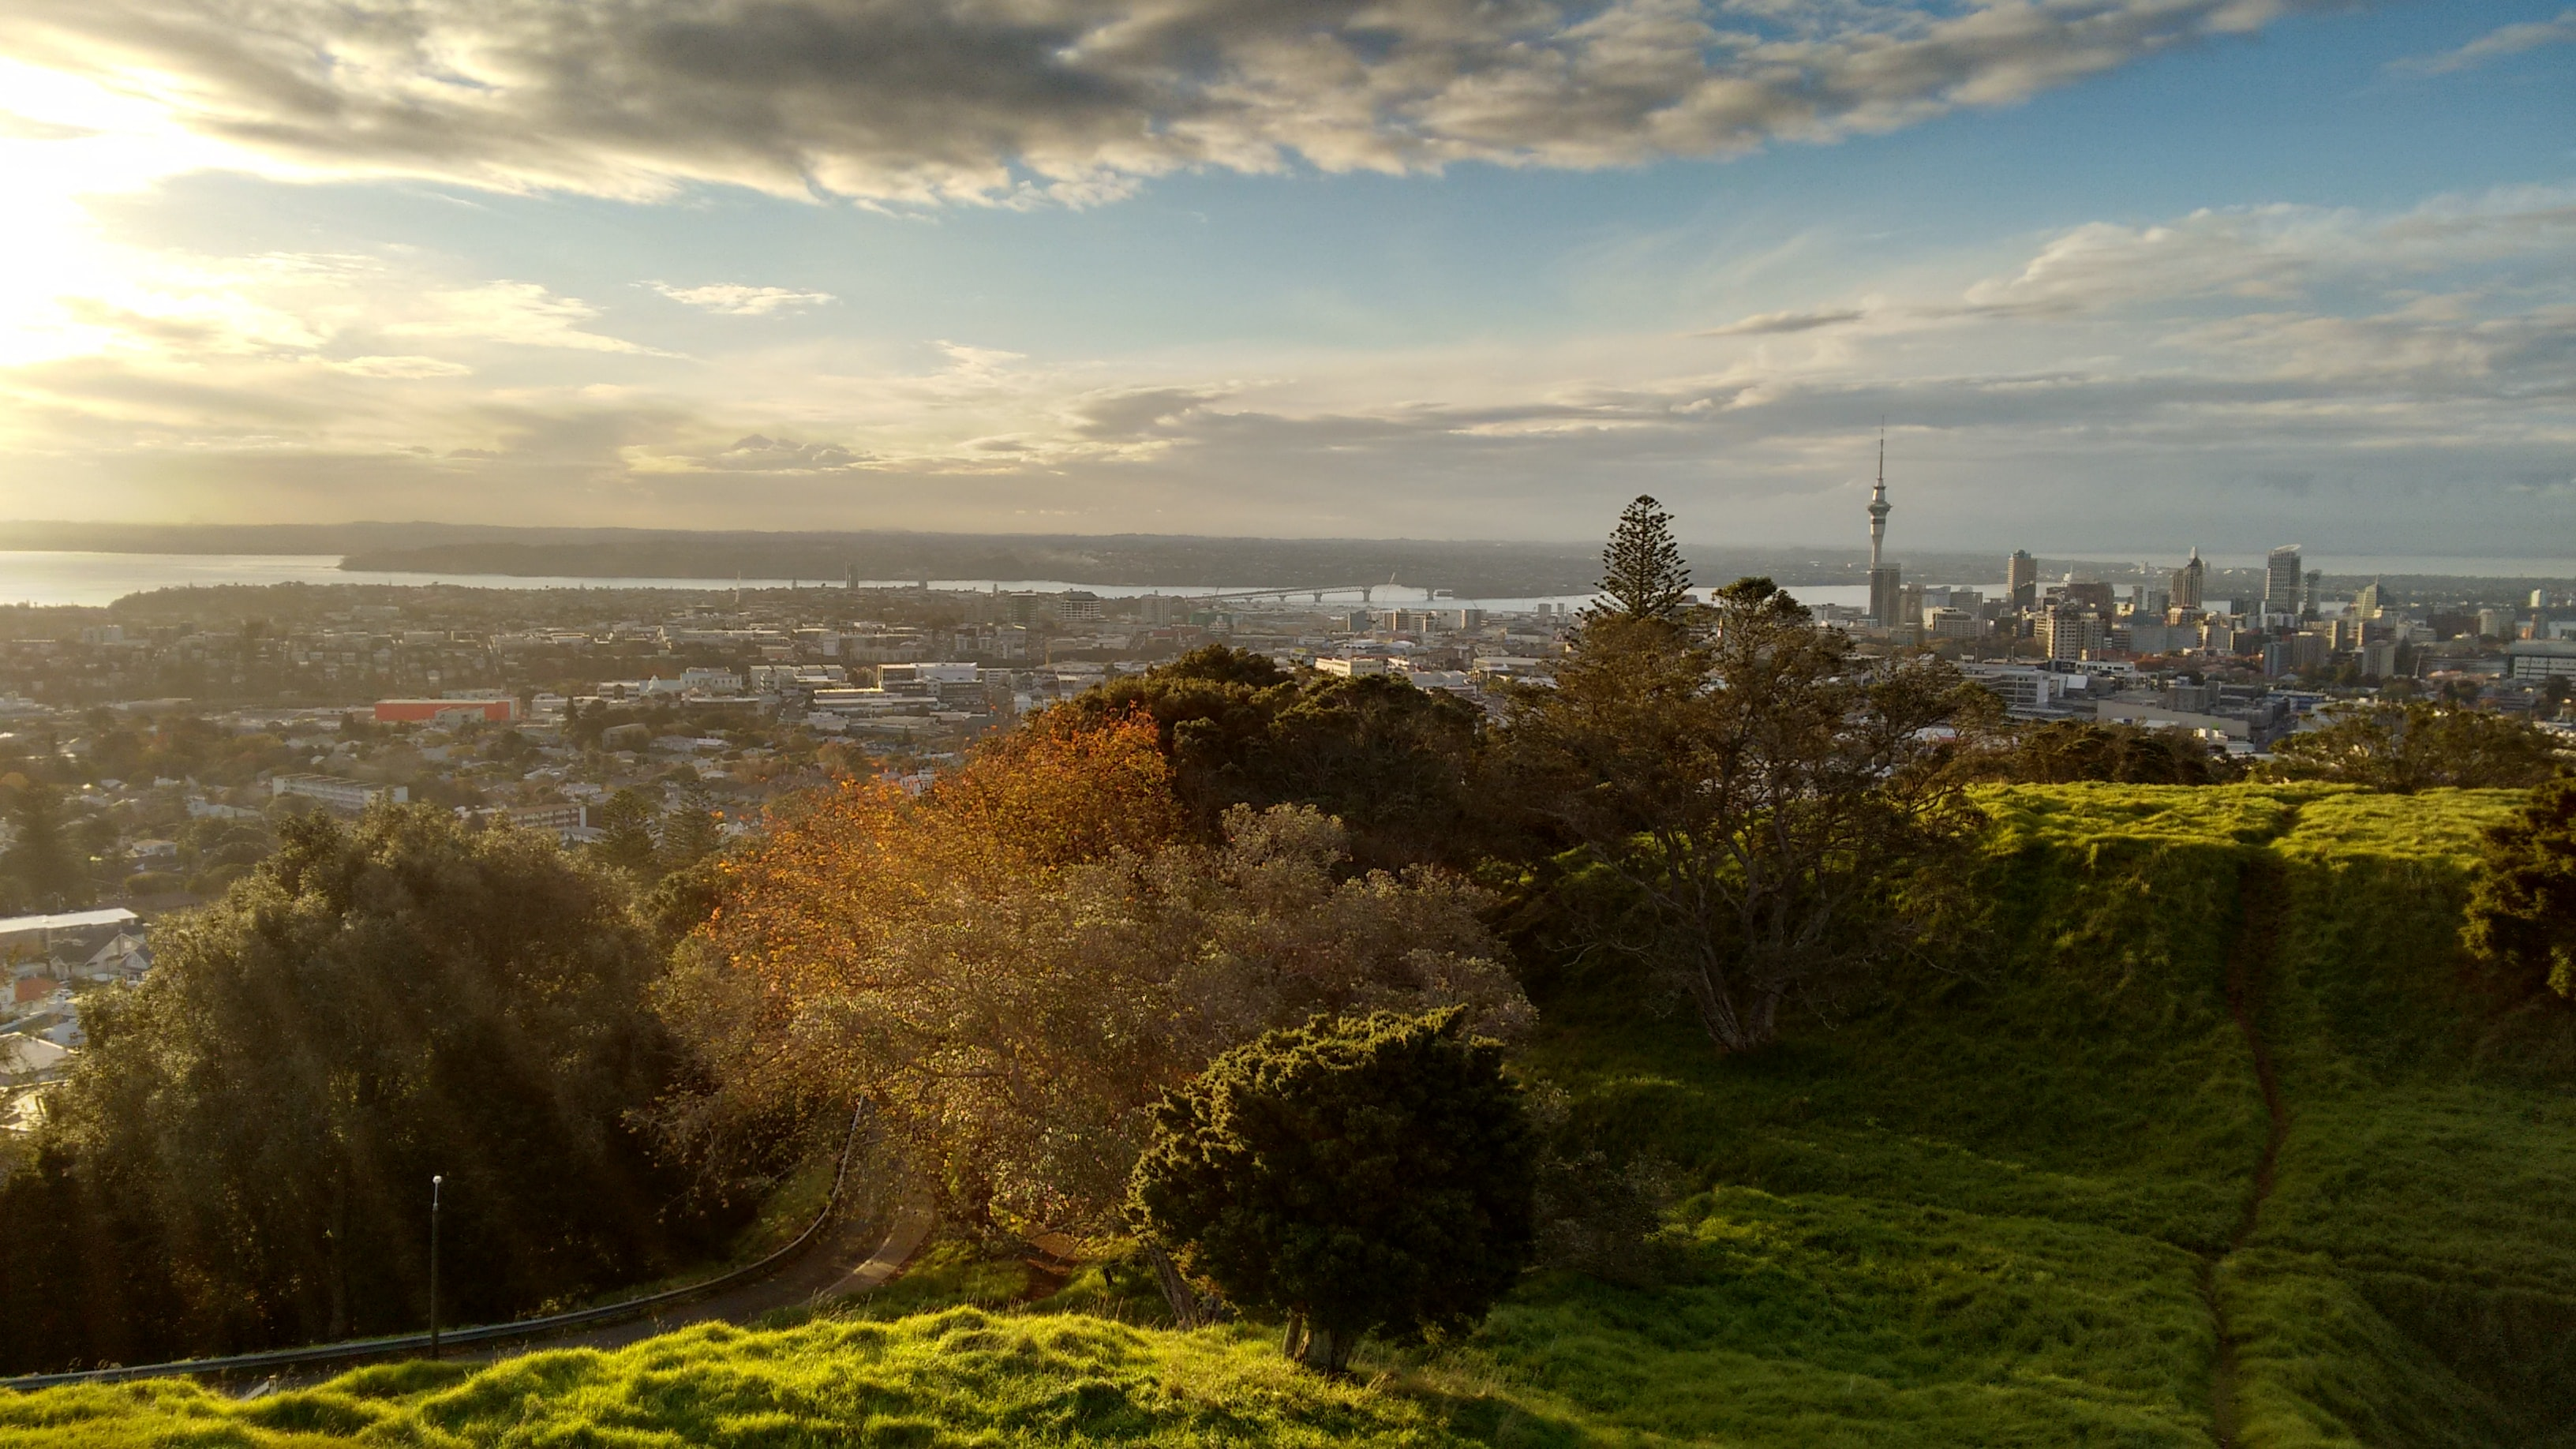 The skyline of Auckland under fluffy clouds seen from a green hill near the city